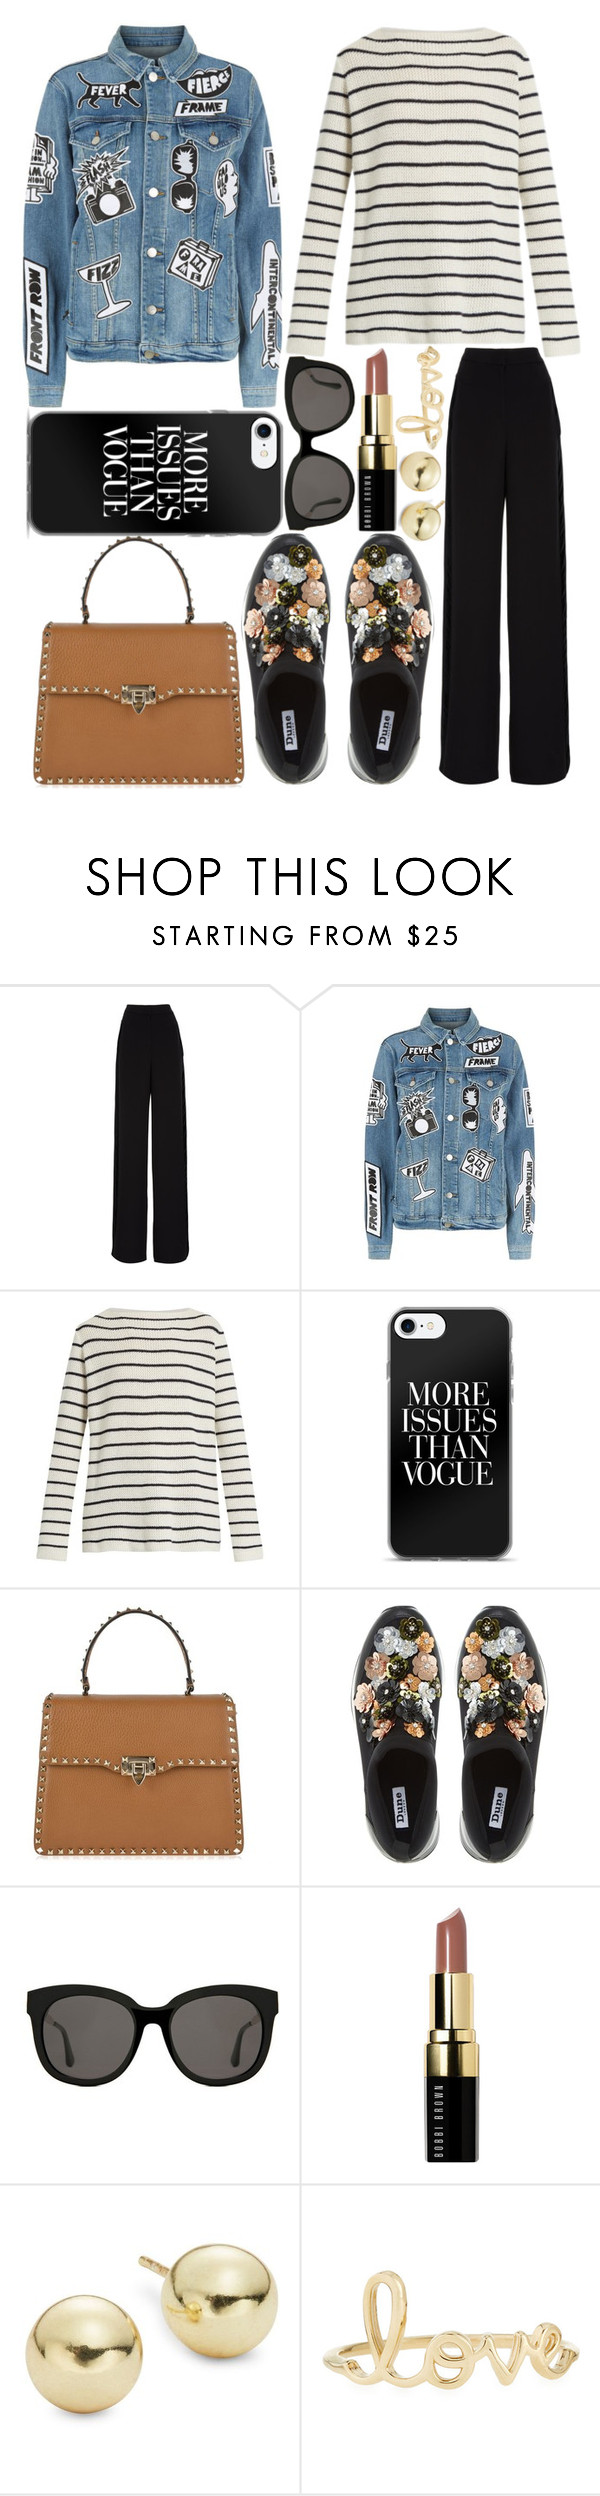 """Untitled #1179"" by sc-styles ❤ liked on Polyvore featuring Rochas, Frame, The Row, Valentino, Dune, Gentle Monster, Bobbi Brown Cosmetics, Lord & Taylor and Sydney Evan"